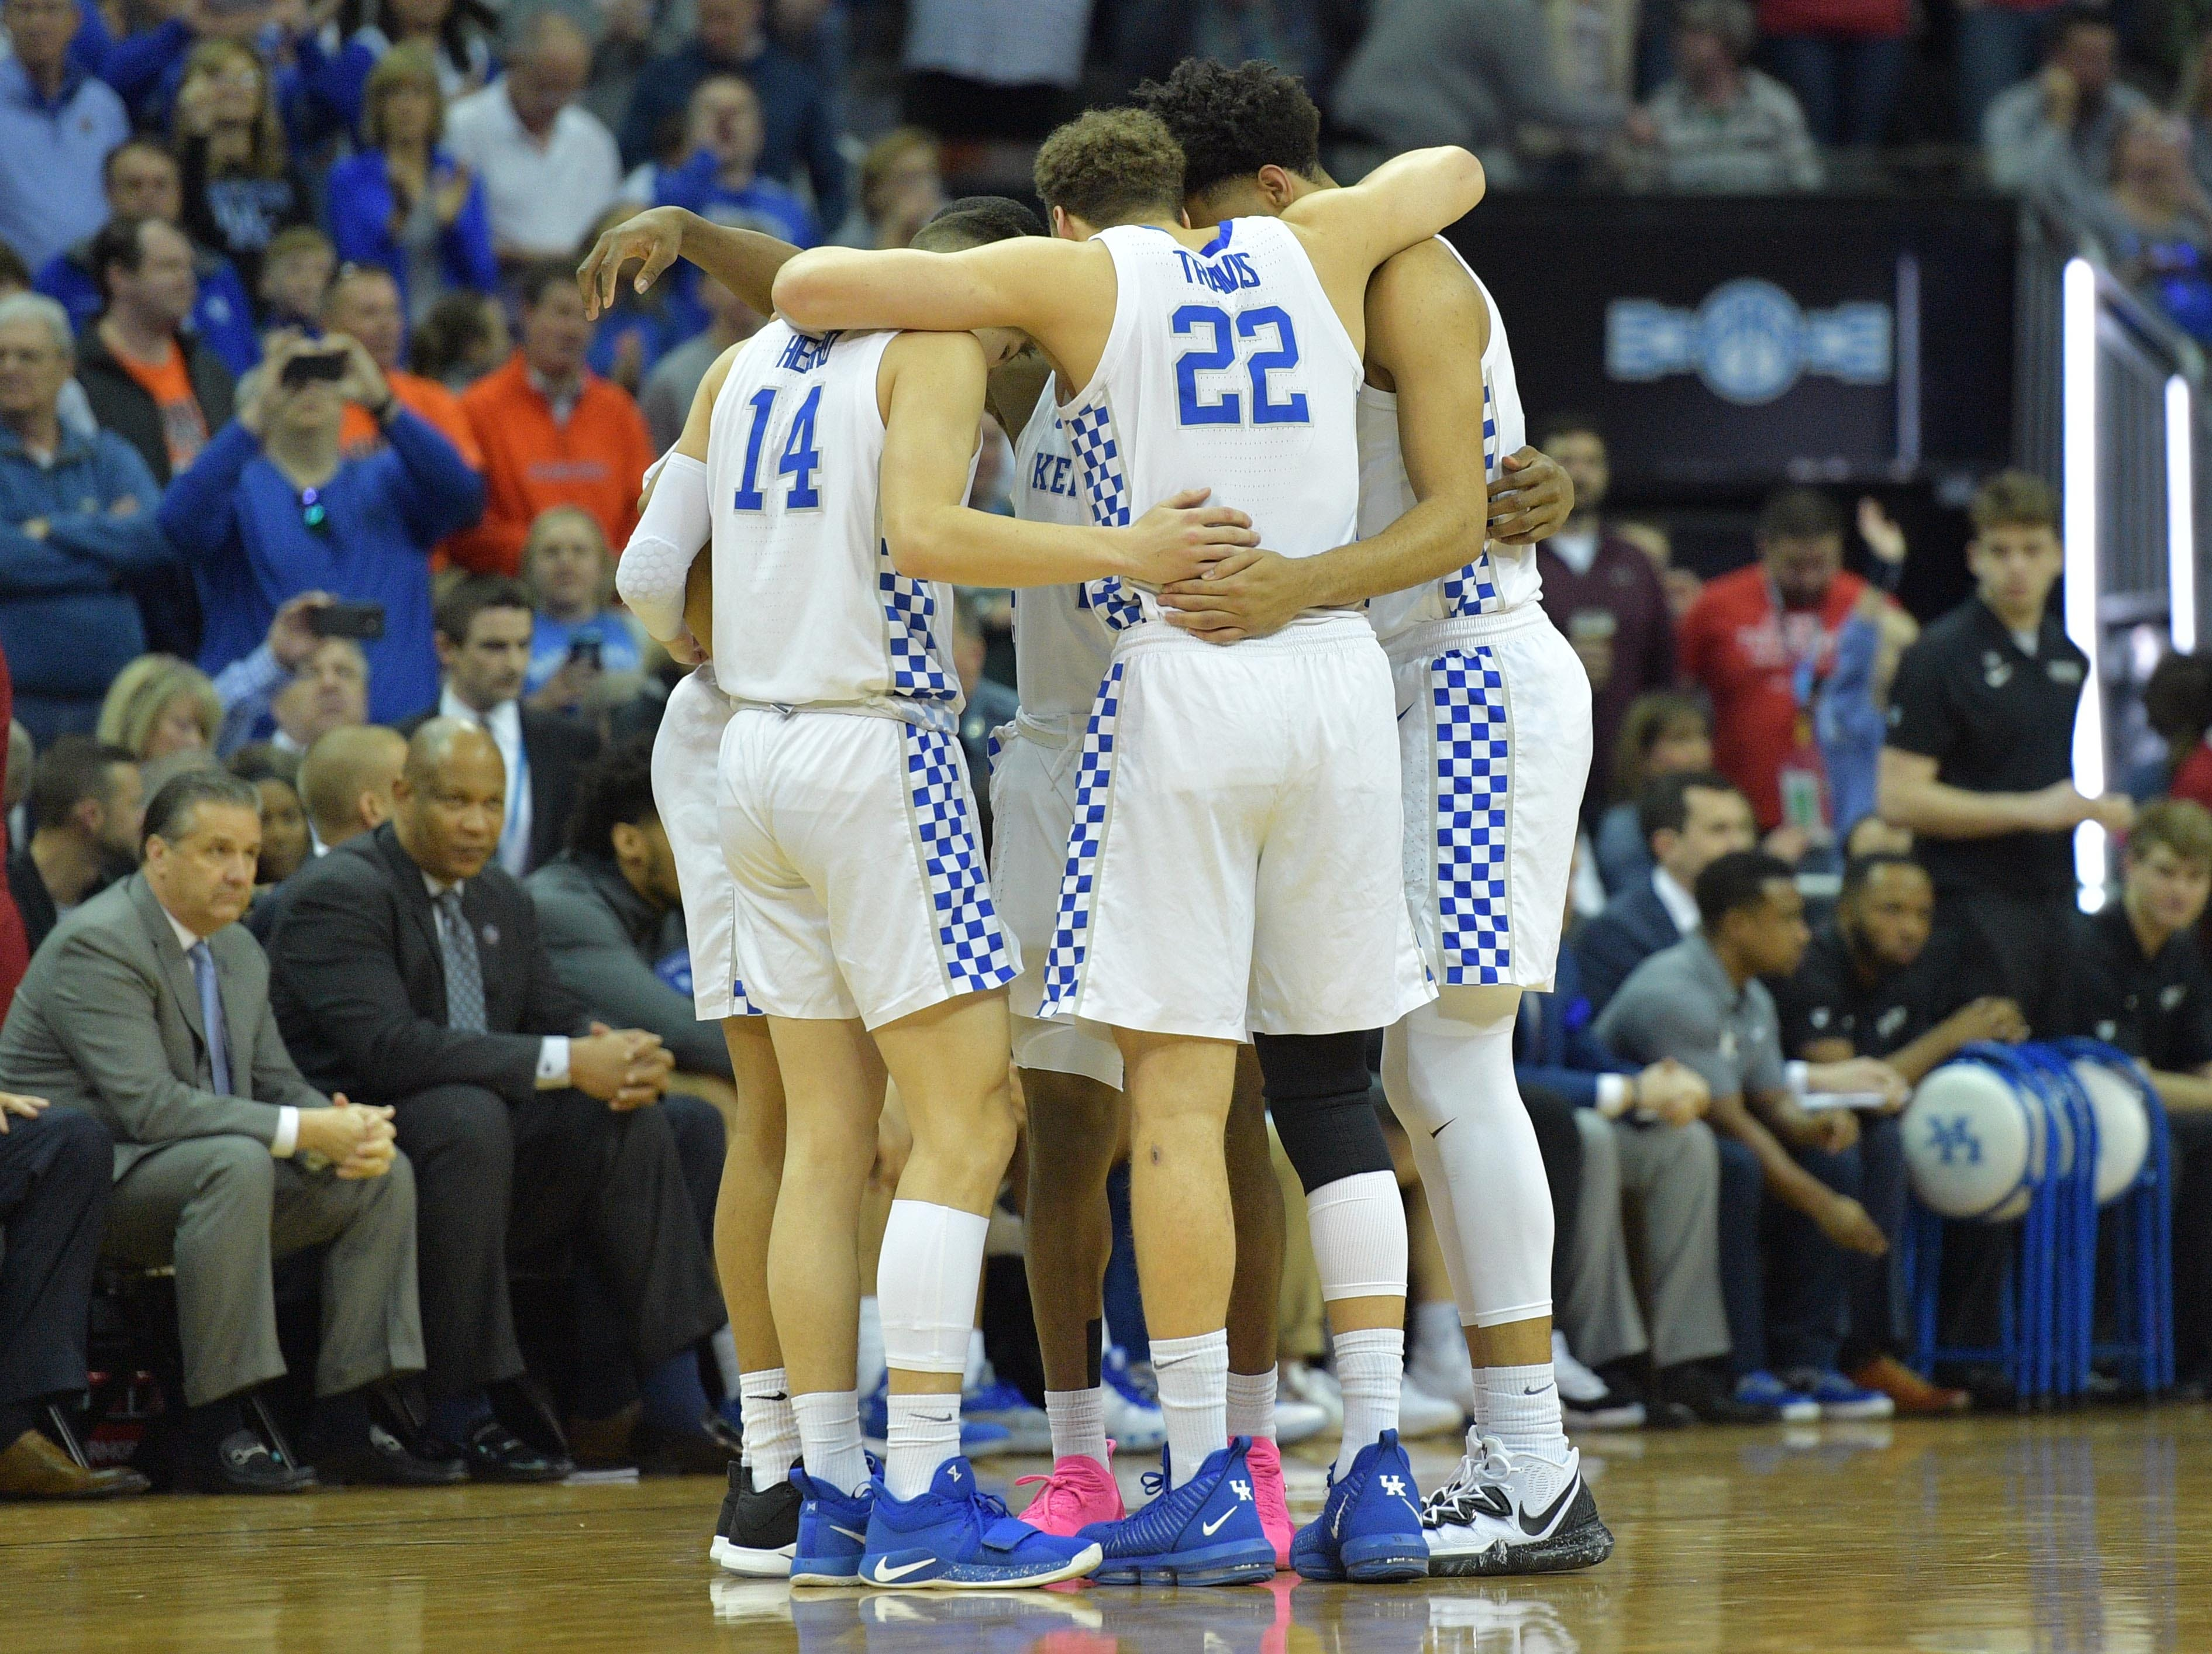 Mar 31, 2019; Kansas City, MO, United States; Kentucky Wildcats players huddle against the Auburn Tigers during the first half in the championship game of the midwest regional of the 2019 NCAA Tournament at Sprint Center. Mandatory Credit: Denny Medley-USA TODAY Sports